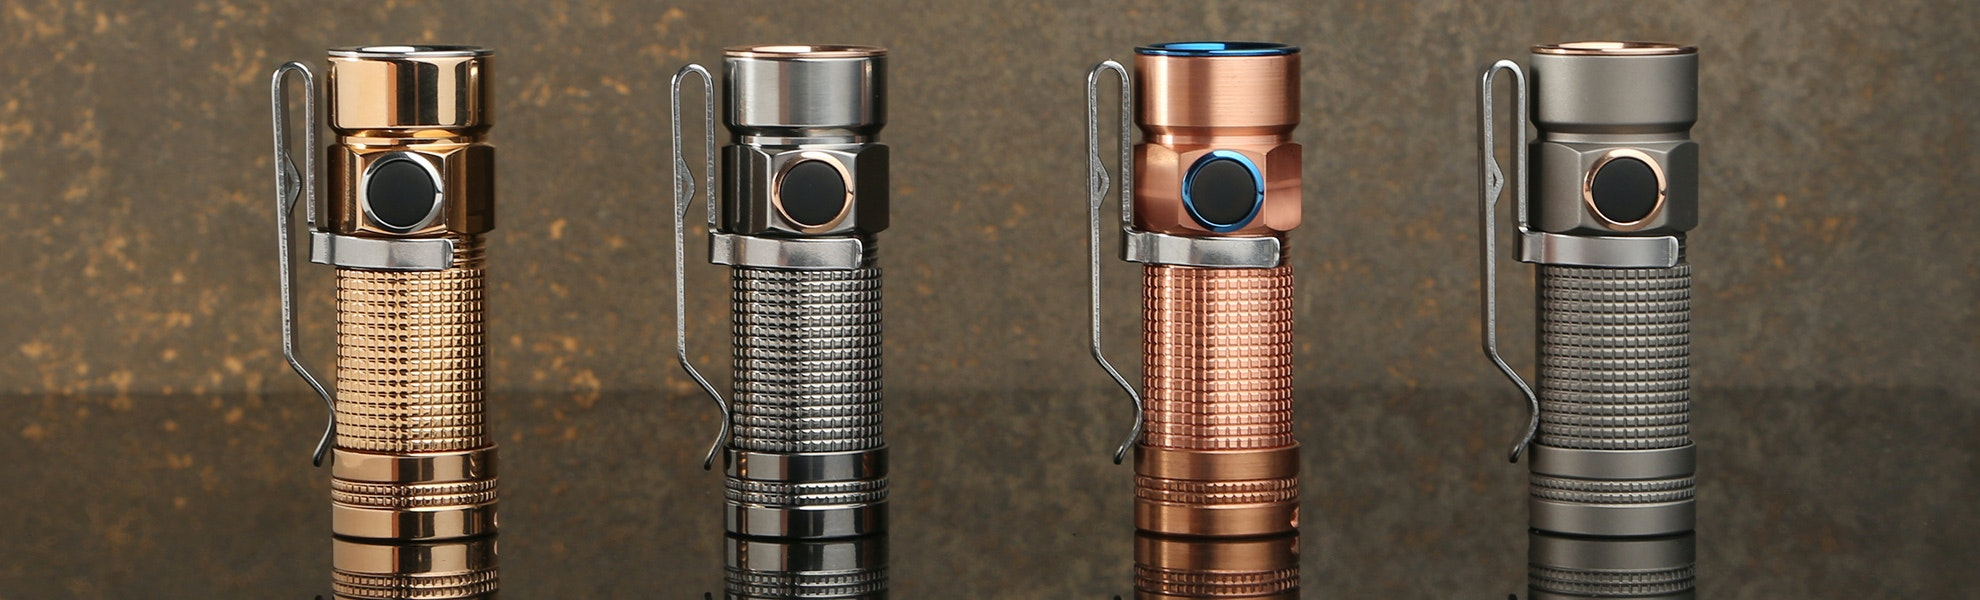 https://massdrop-s3.imgix.net/product-images/olight-s1-baton-light-limited-edition/MD-15156_20160126114203_ce123bae2c4f1b15.jpg?auto=format&fm=jpg&fit=crop&w=965&h=292&dpr=1&mark=https://massdrop-s3.imgix.net/img_site/best_of_drop_banner_2x.png&markfit=clip&markalign=top,left&markalpha=100&markh=60&markpad=0